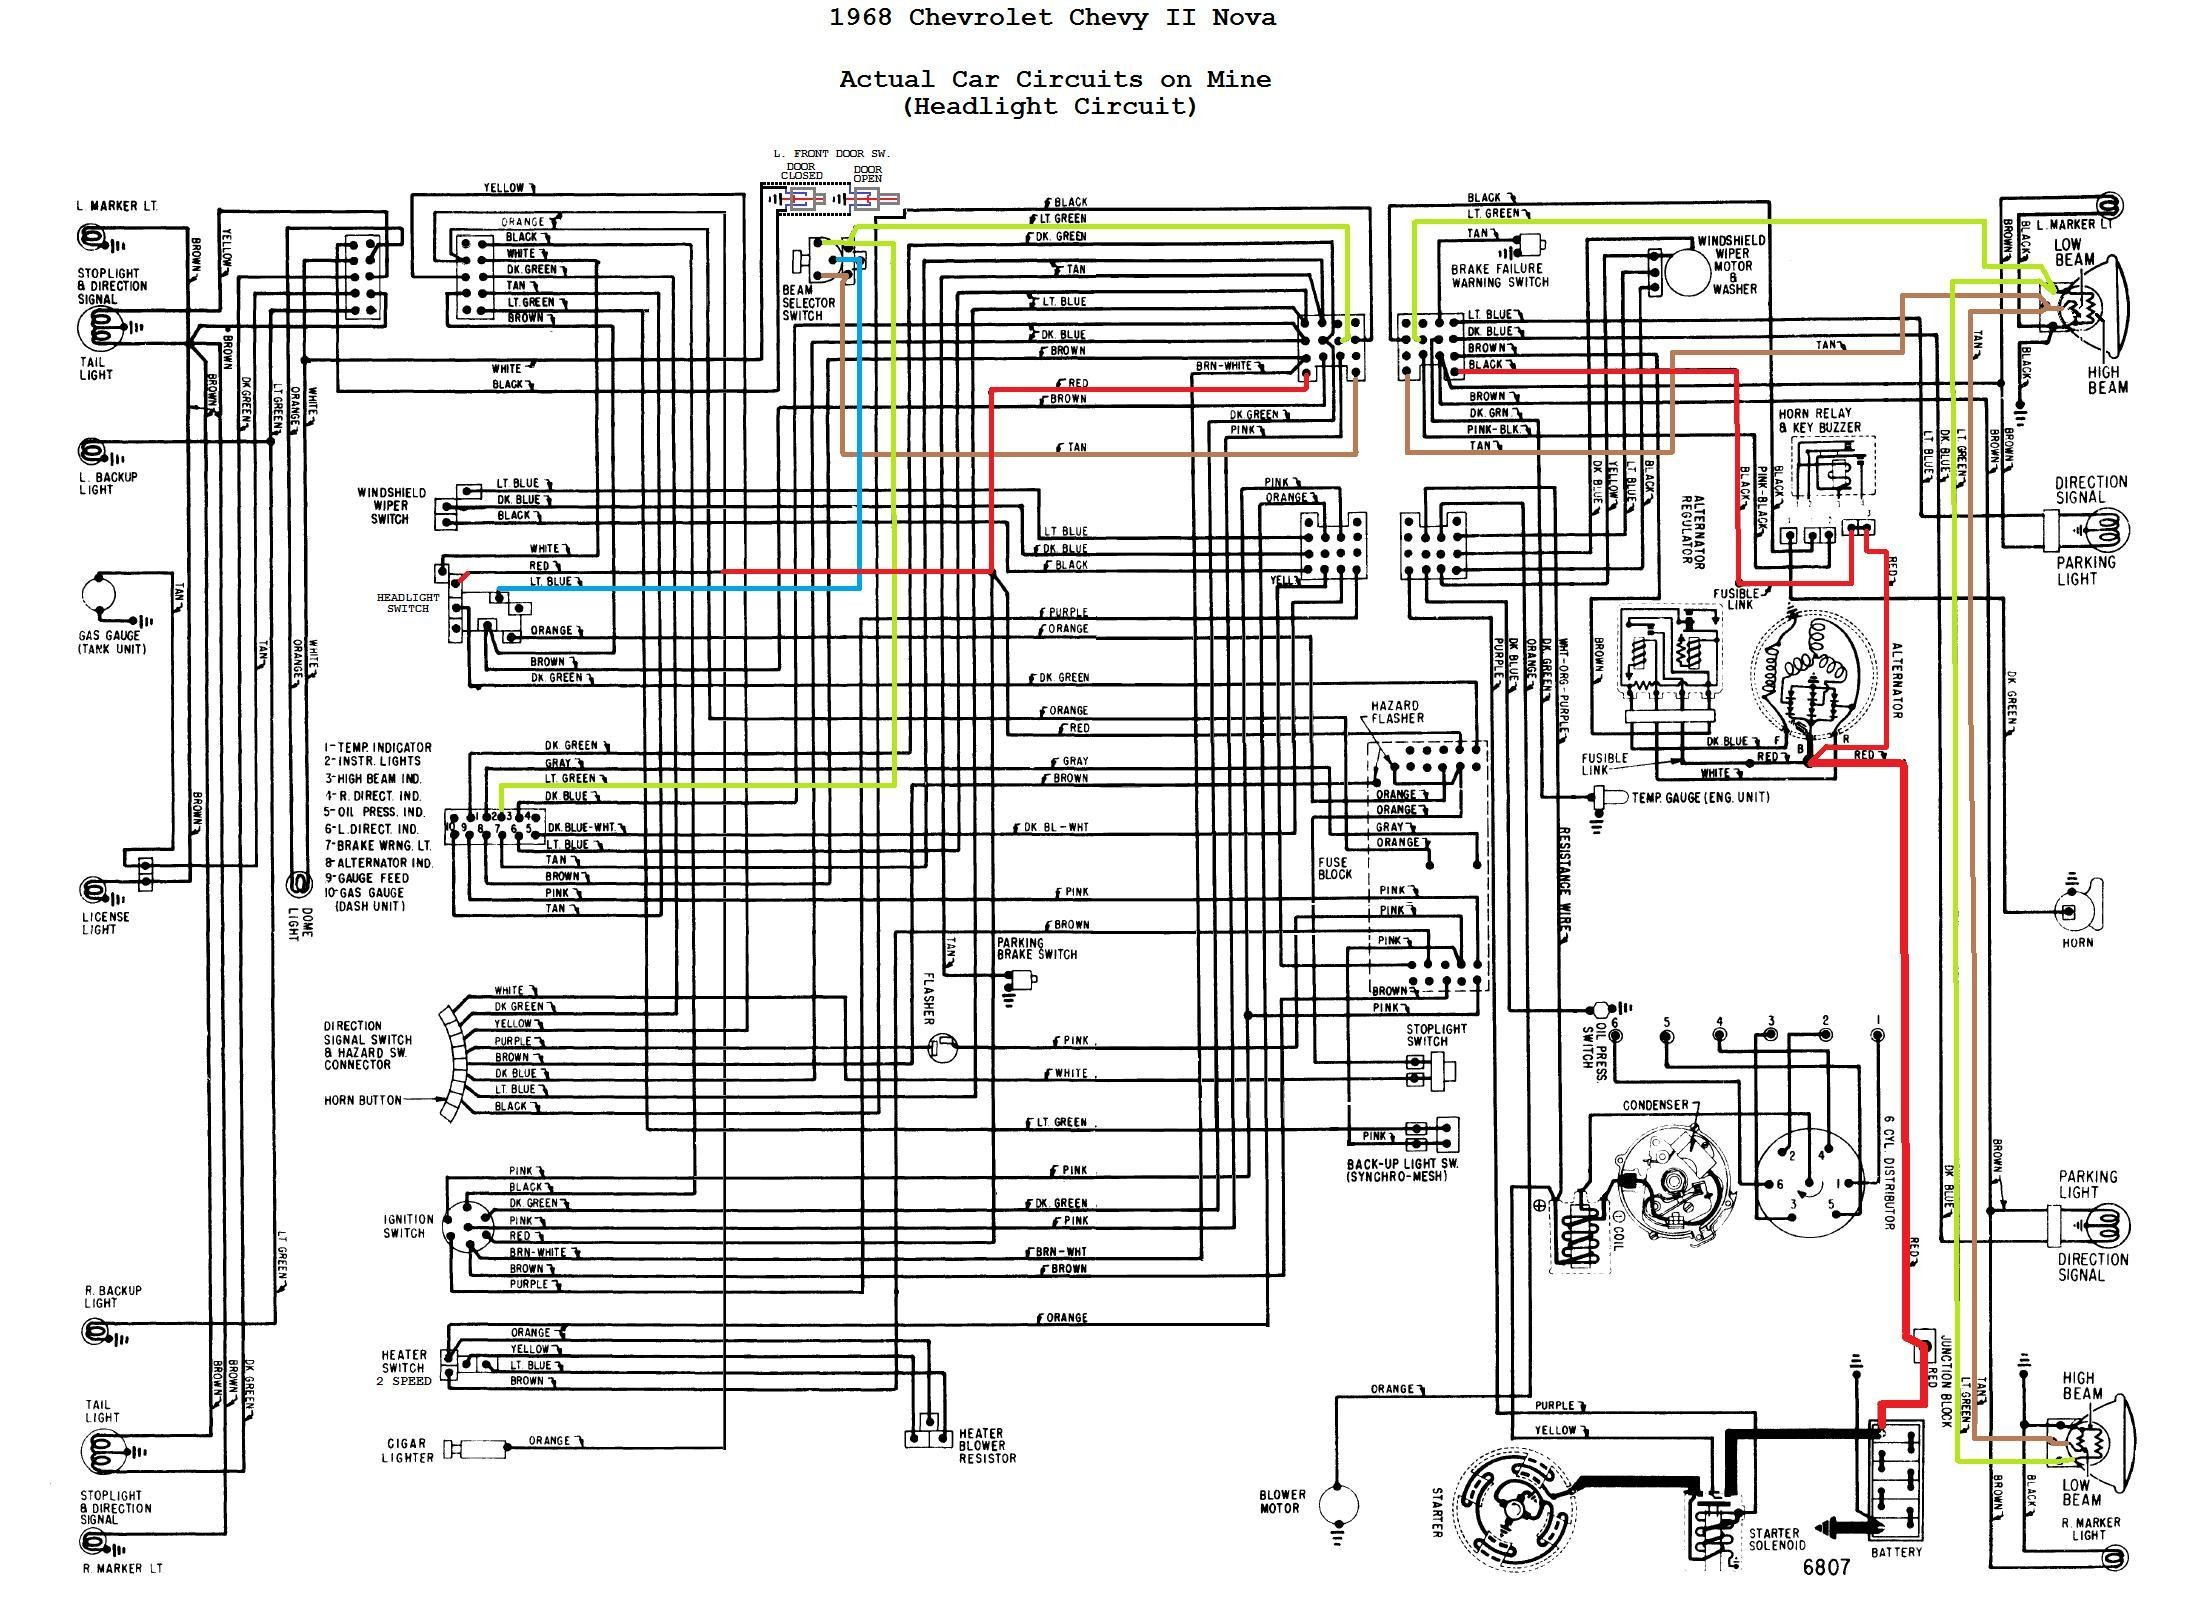 1971 Chevelle Wiring Diagram 1971 Chevy 4×4 Wiring Diagram Wiring Diagram Datasource Of 1971 Chevelle Wiring Diagram 55 Chevrolet Wiring Diagram